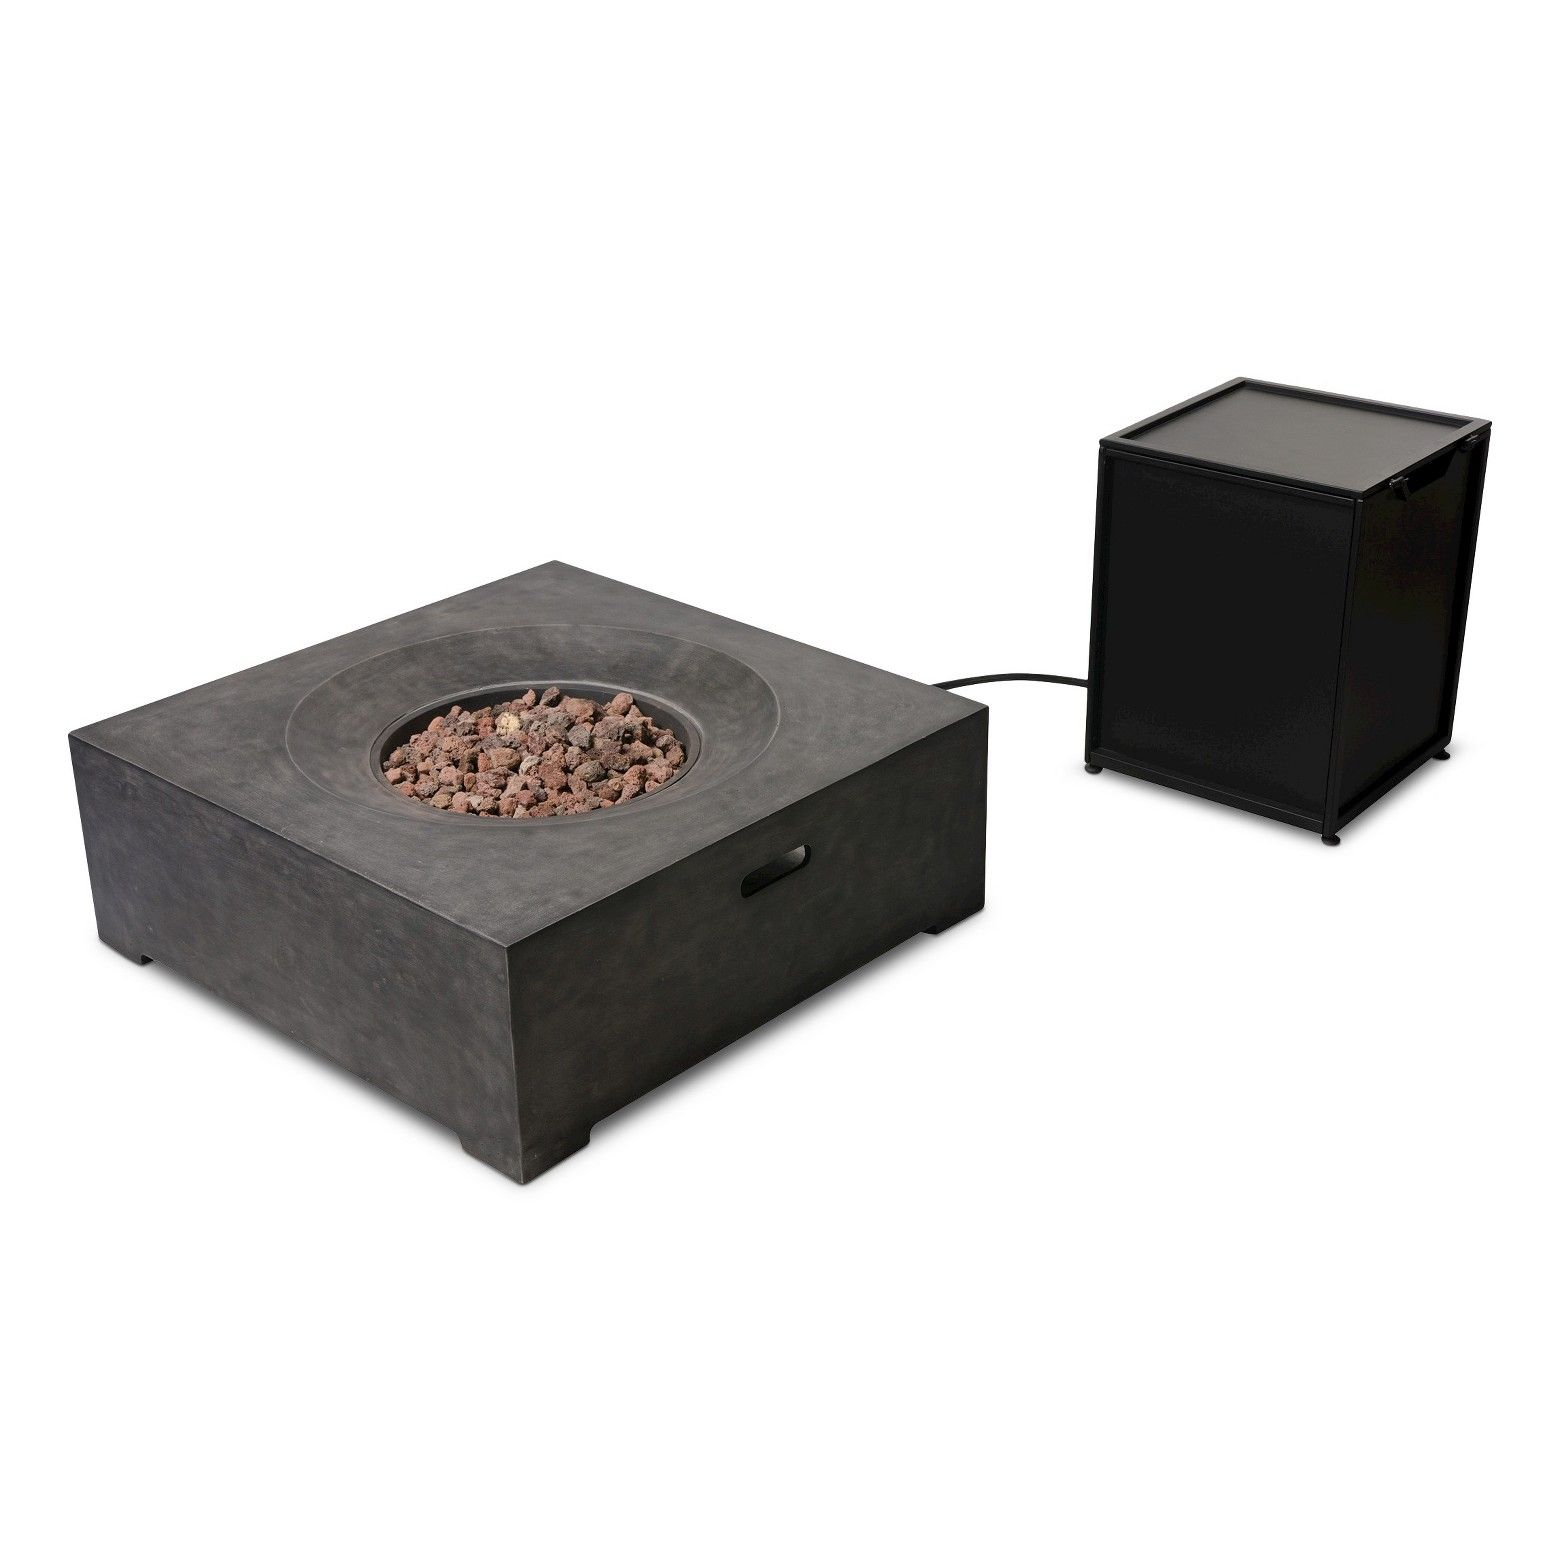 With Clean Lines And Flat Surfaces The Ashlake 36 Rdquo Square Fire Table Offers A Contemporary Twist To Your Patio Outdoor Fire Pit Fire Table Outdoor Fire